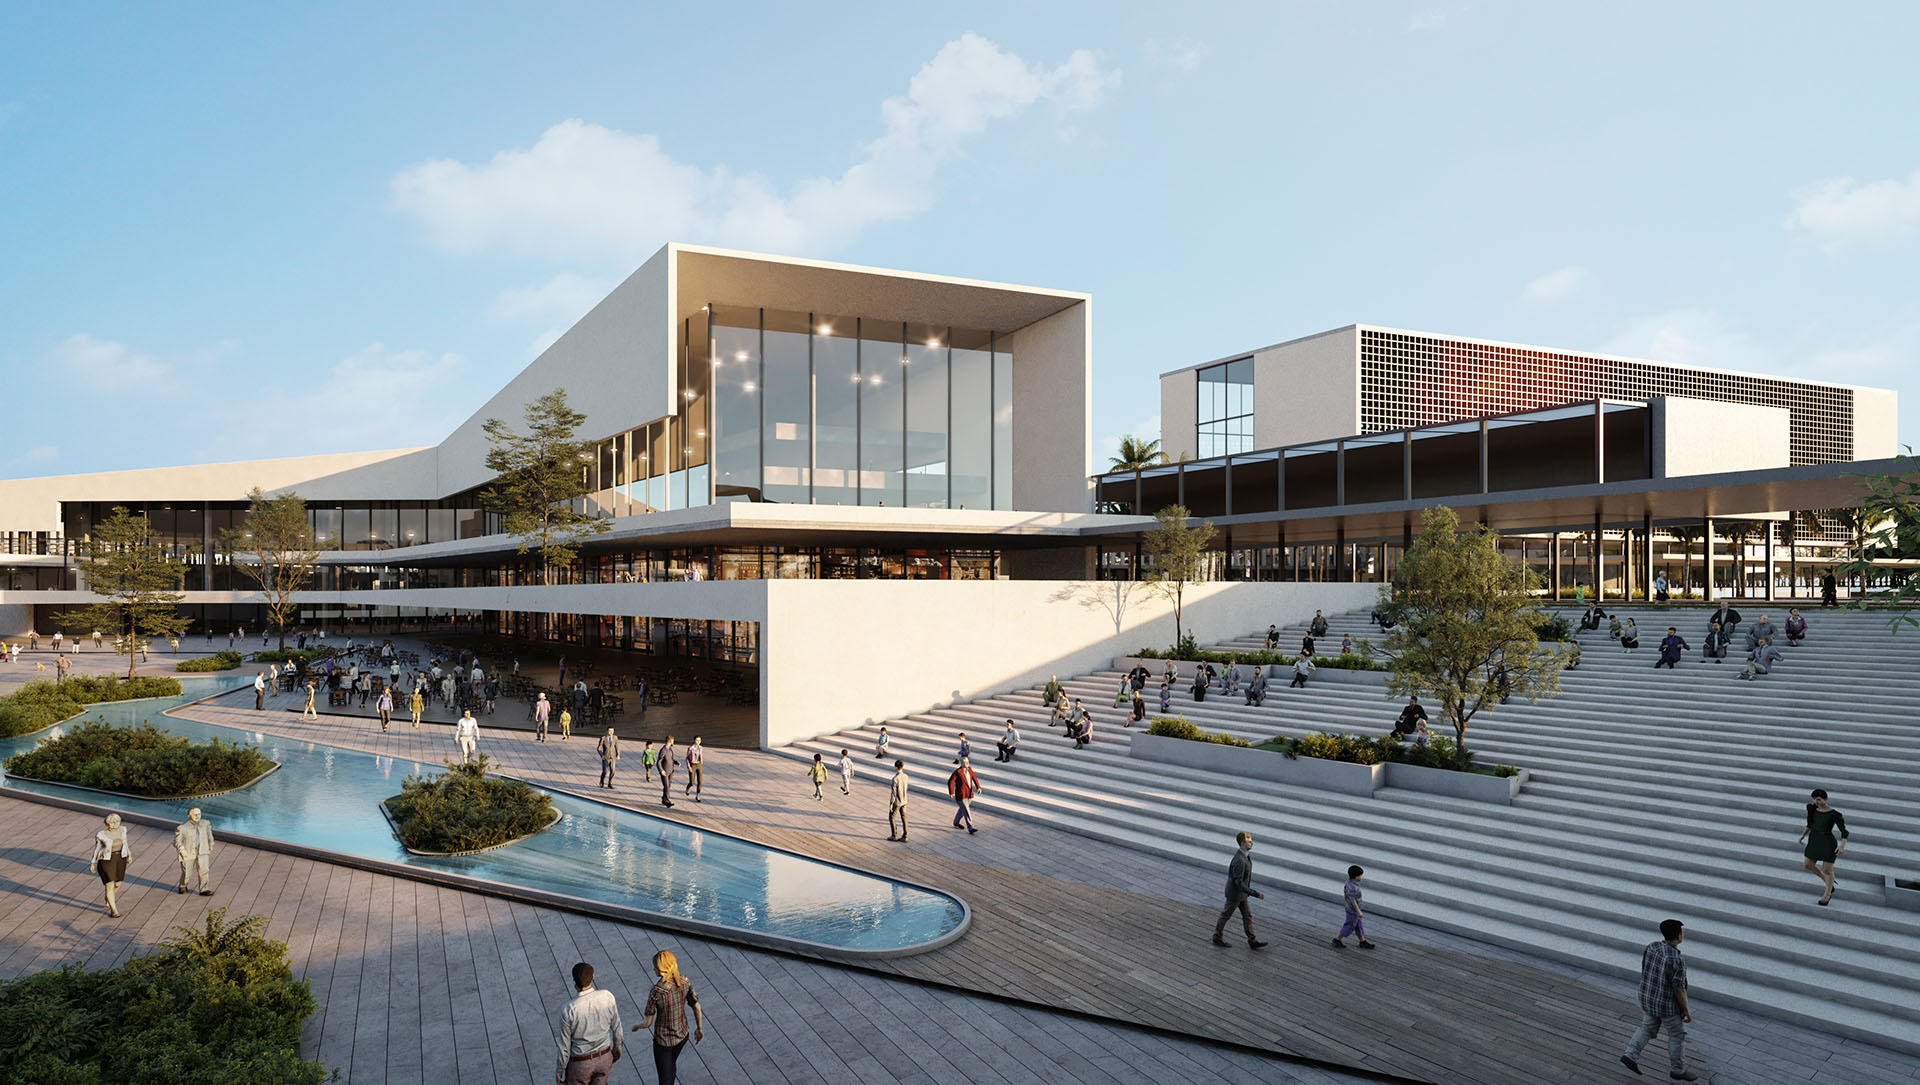 Izmir Bus Station Competition